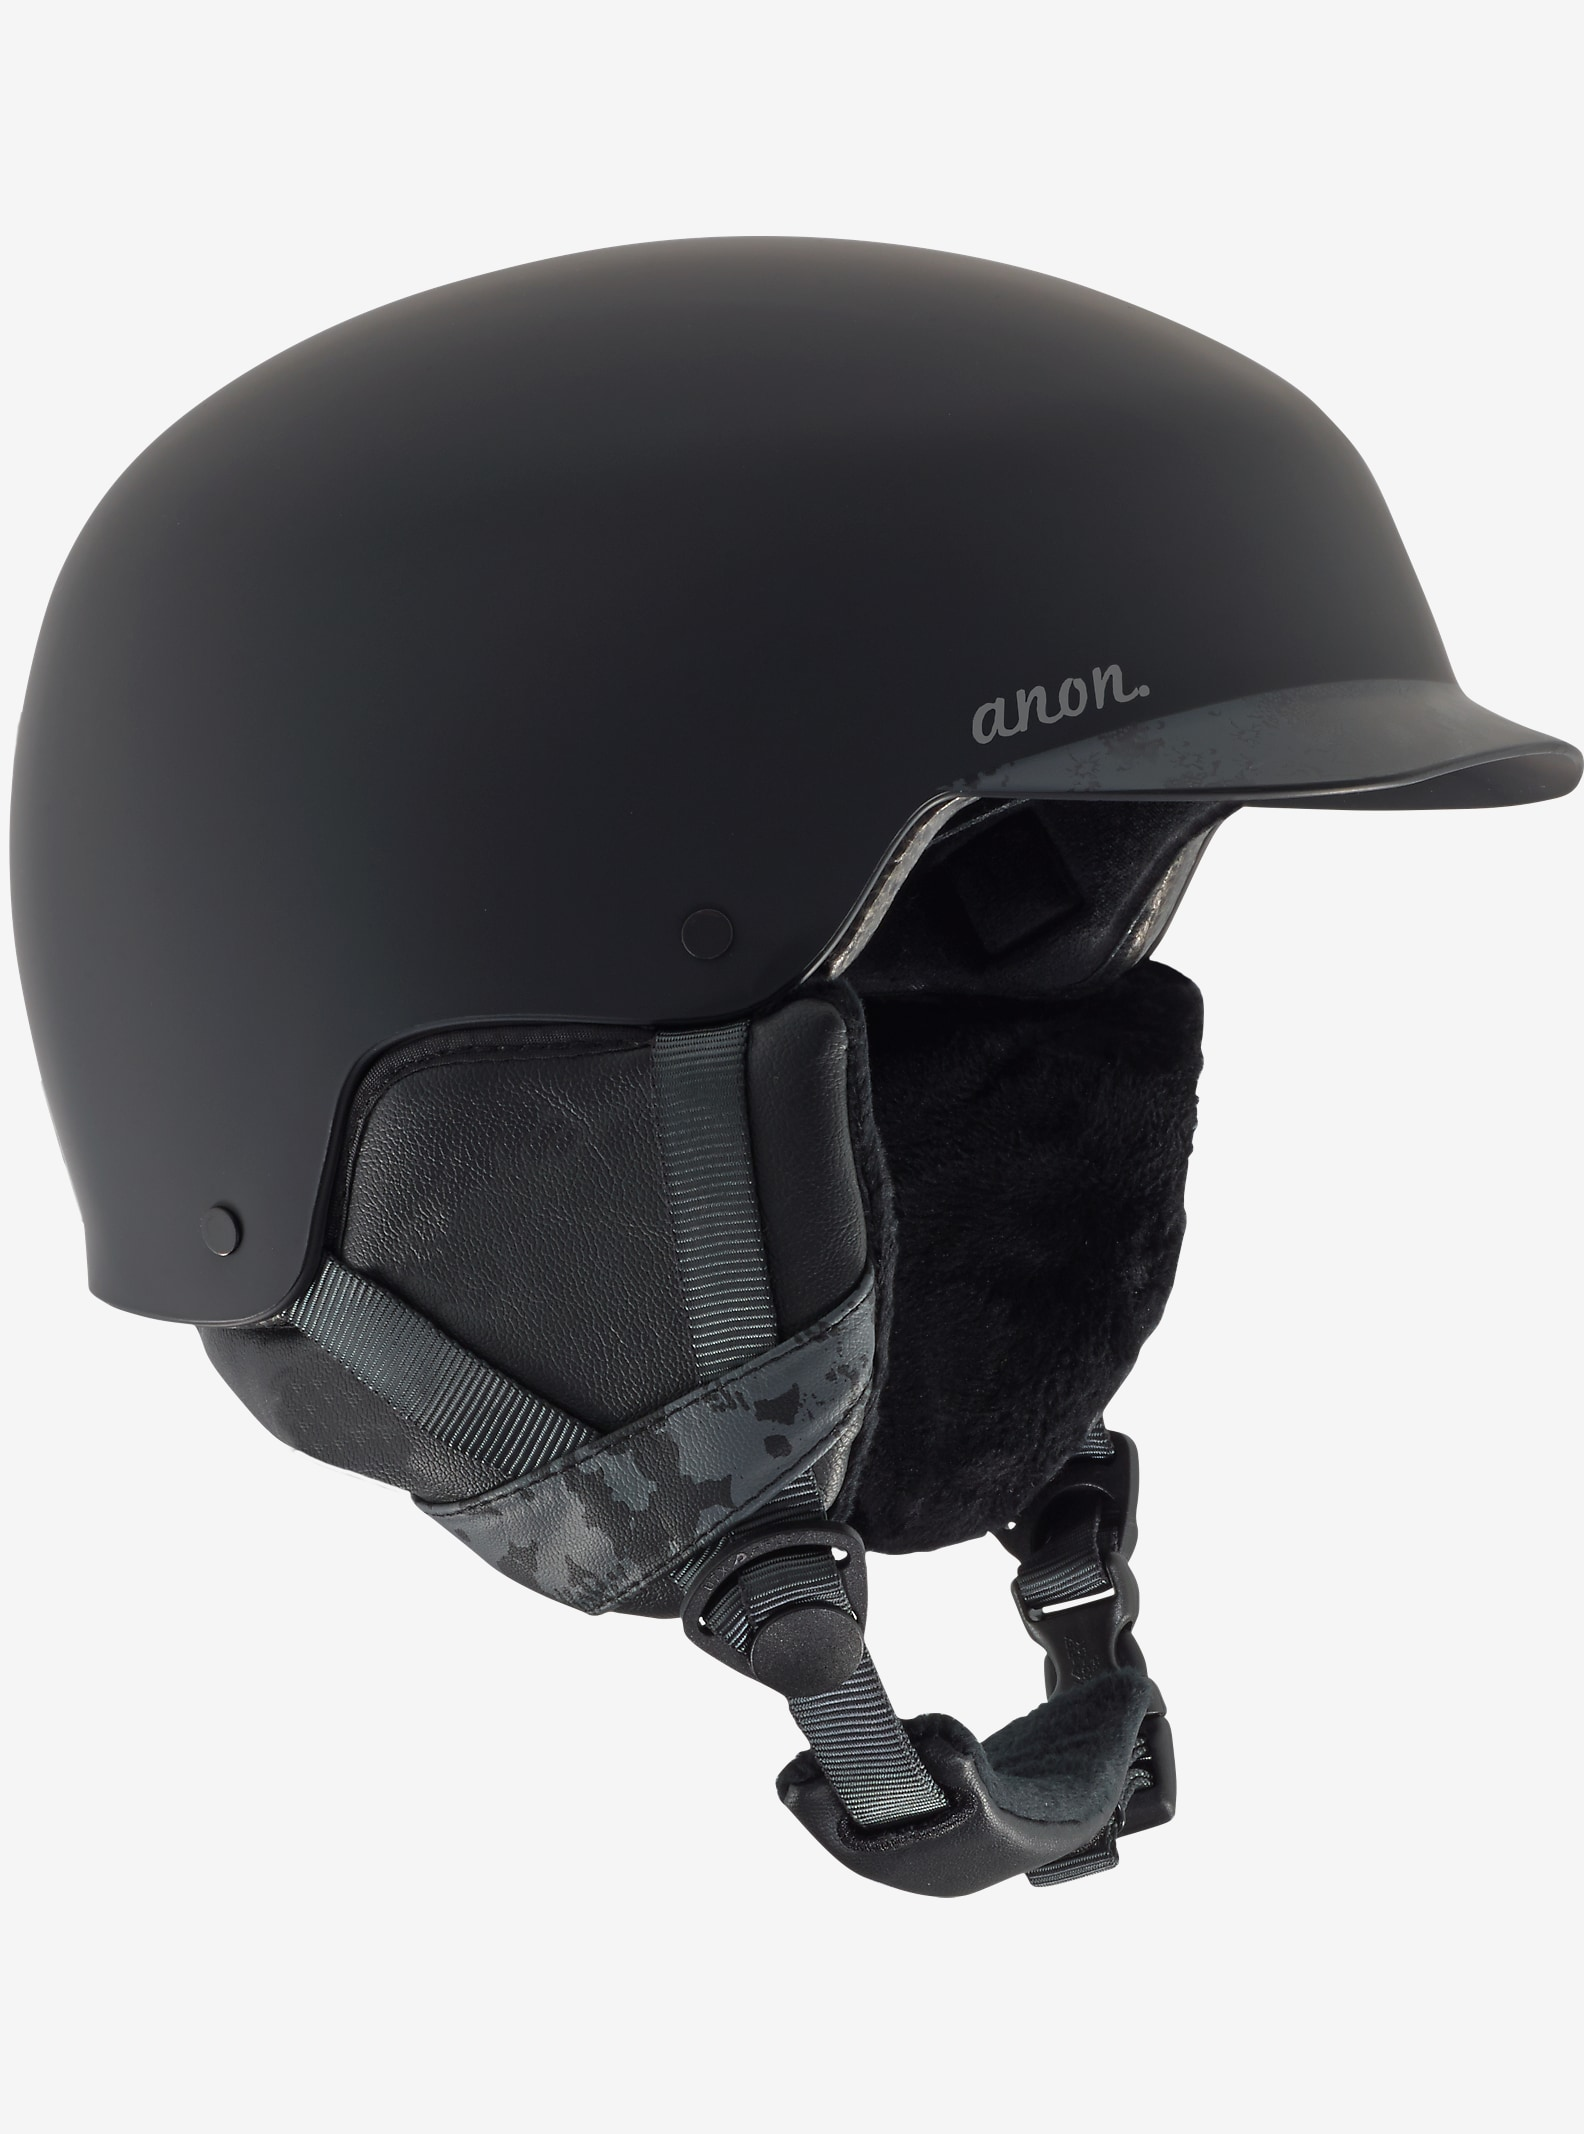 anon. Aera Helmet shown in Black